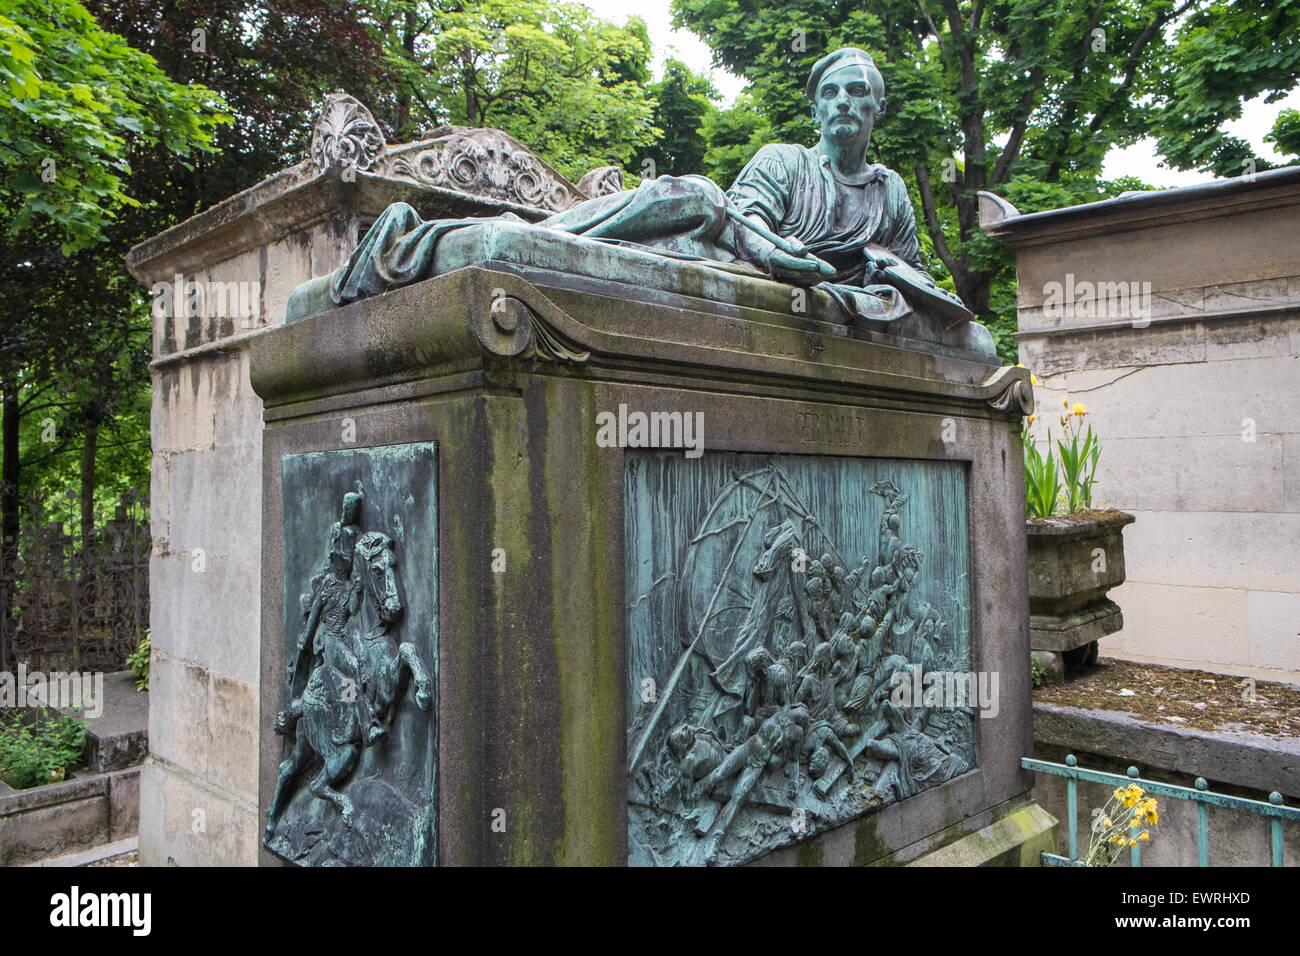 Tomb of the painter Gericault, above his masterwork 'The Raft of the Medusa', in the Pere Lachaise cemetery - Stock Image